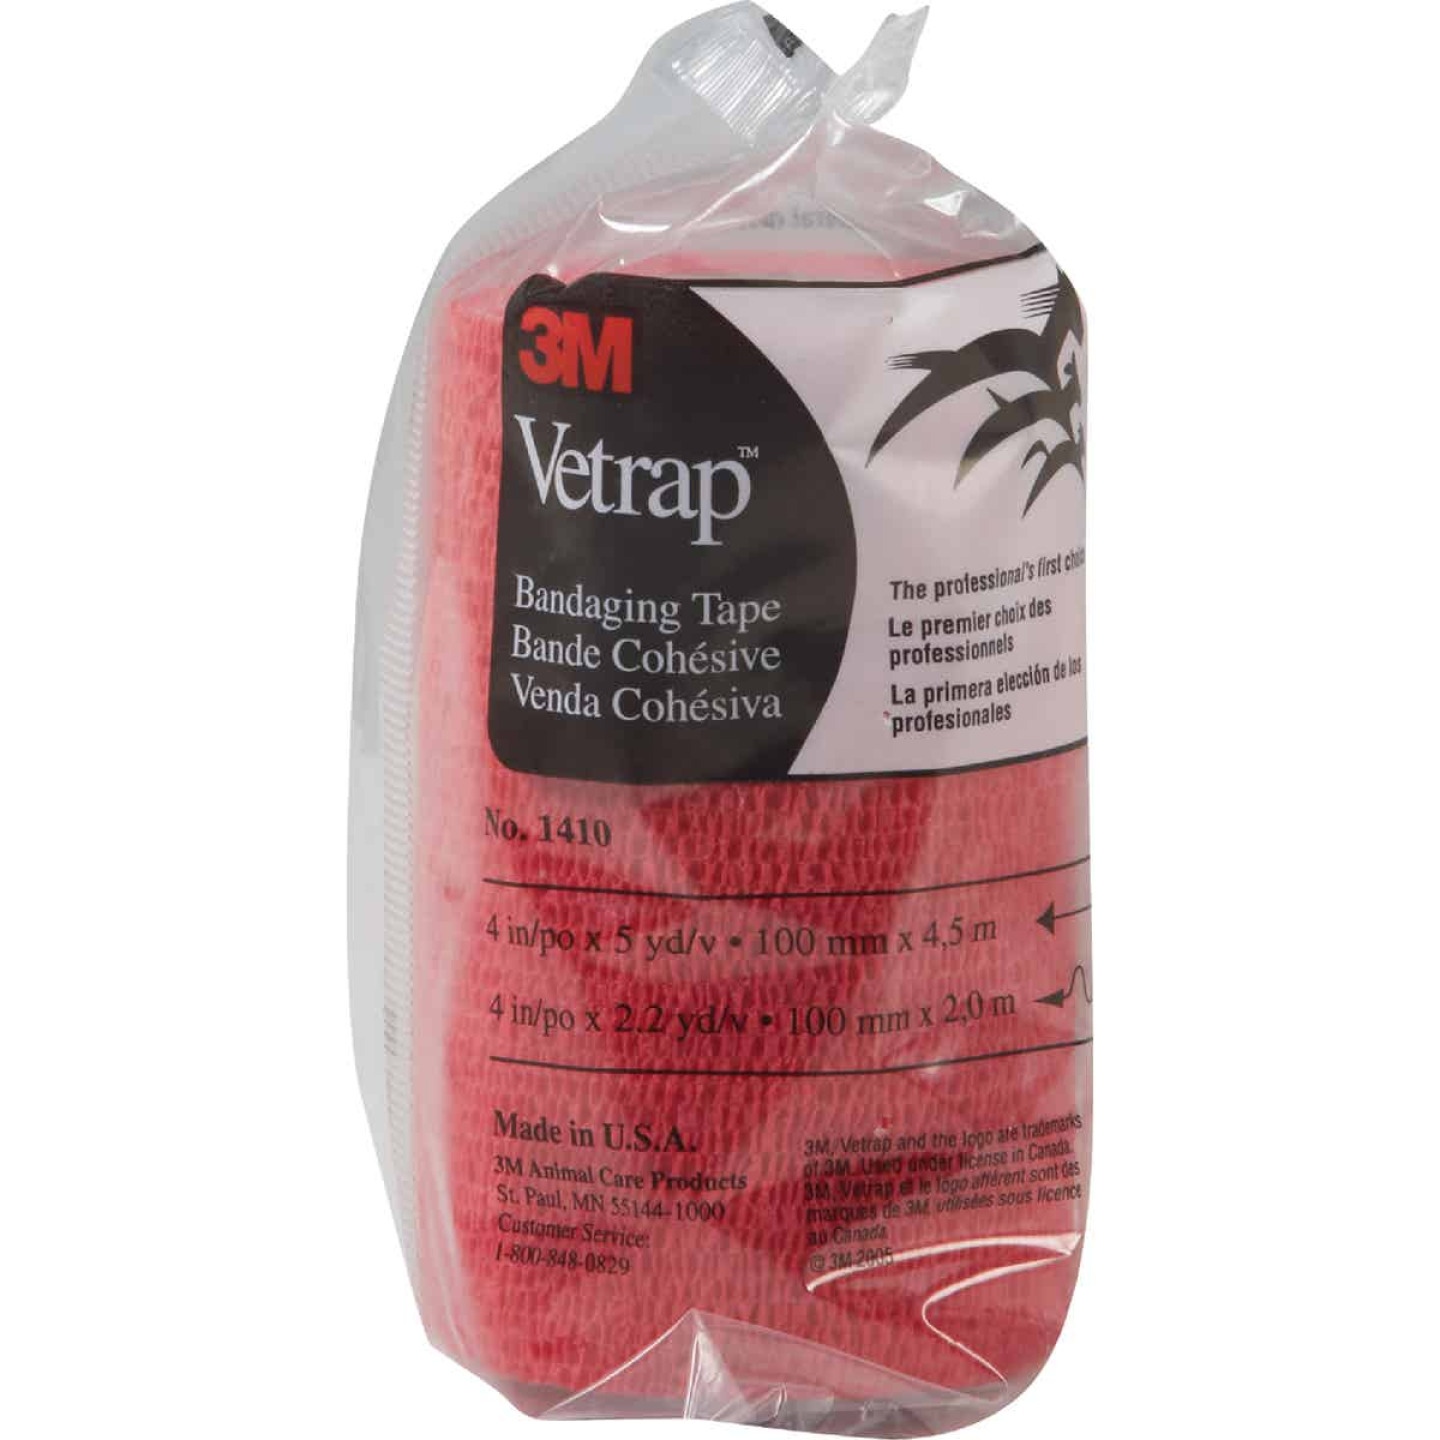 3M Vetrap 4 In. x 5 Yd. Red Bandaging Wrap Image 2